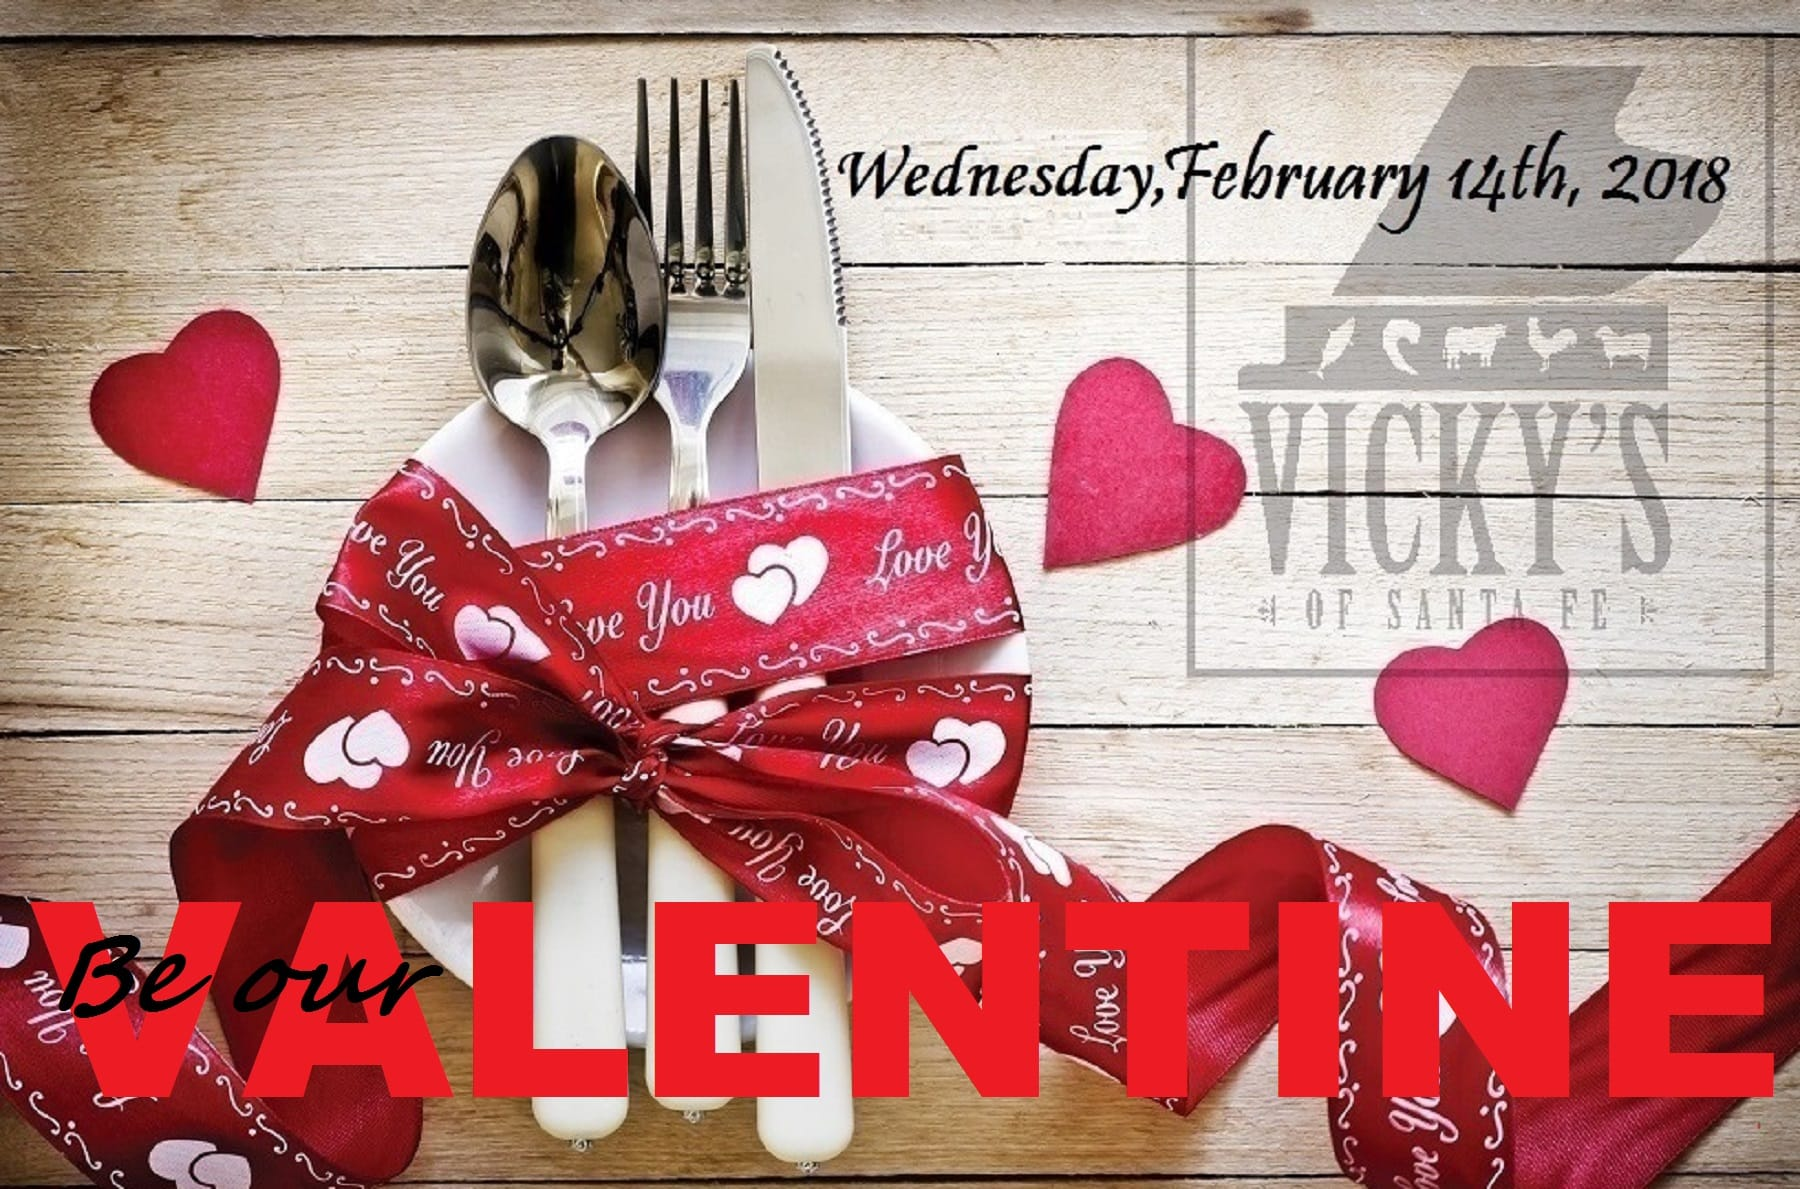 Celebrate Your Valentine With Dinner U0026 Music At Vickyu0027s Of Santa Fe In  Indian Wells